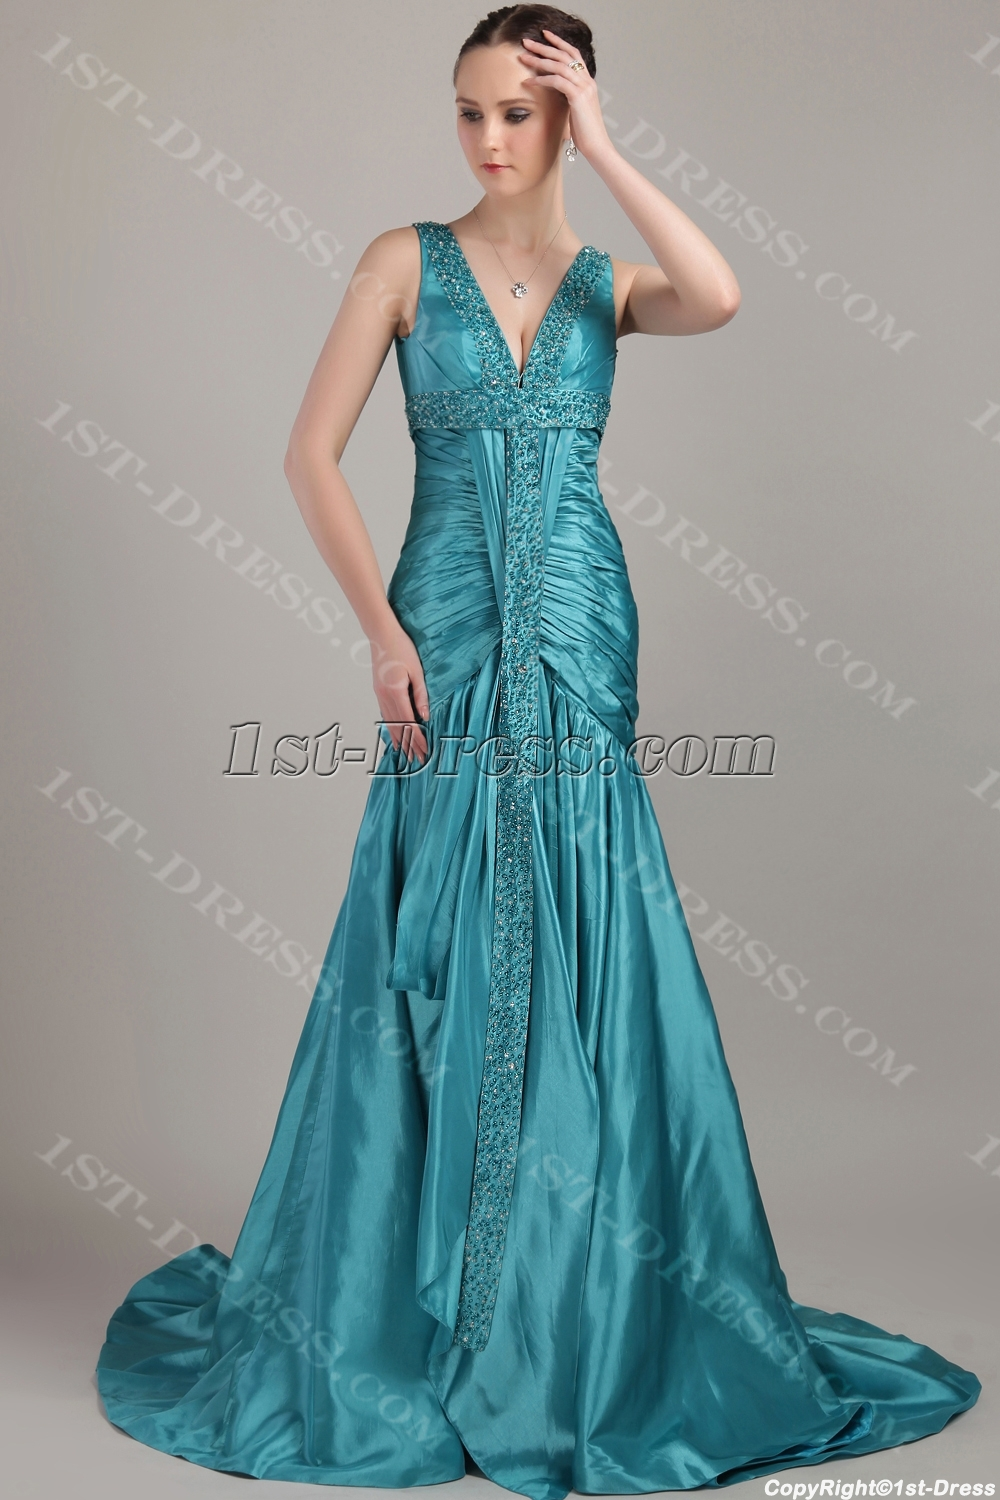 images/201304/big/Hunter-Long-Modest-Plus-Size-Prom-Dresses-IMG_3261-1062-b-1-1366193646.jpg